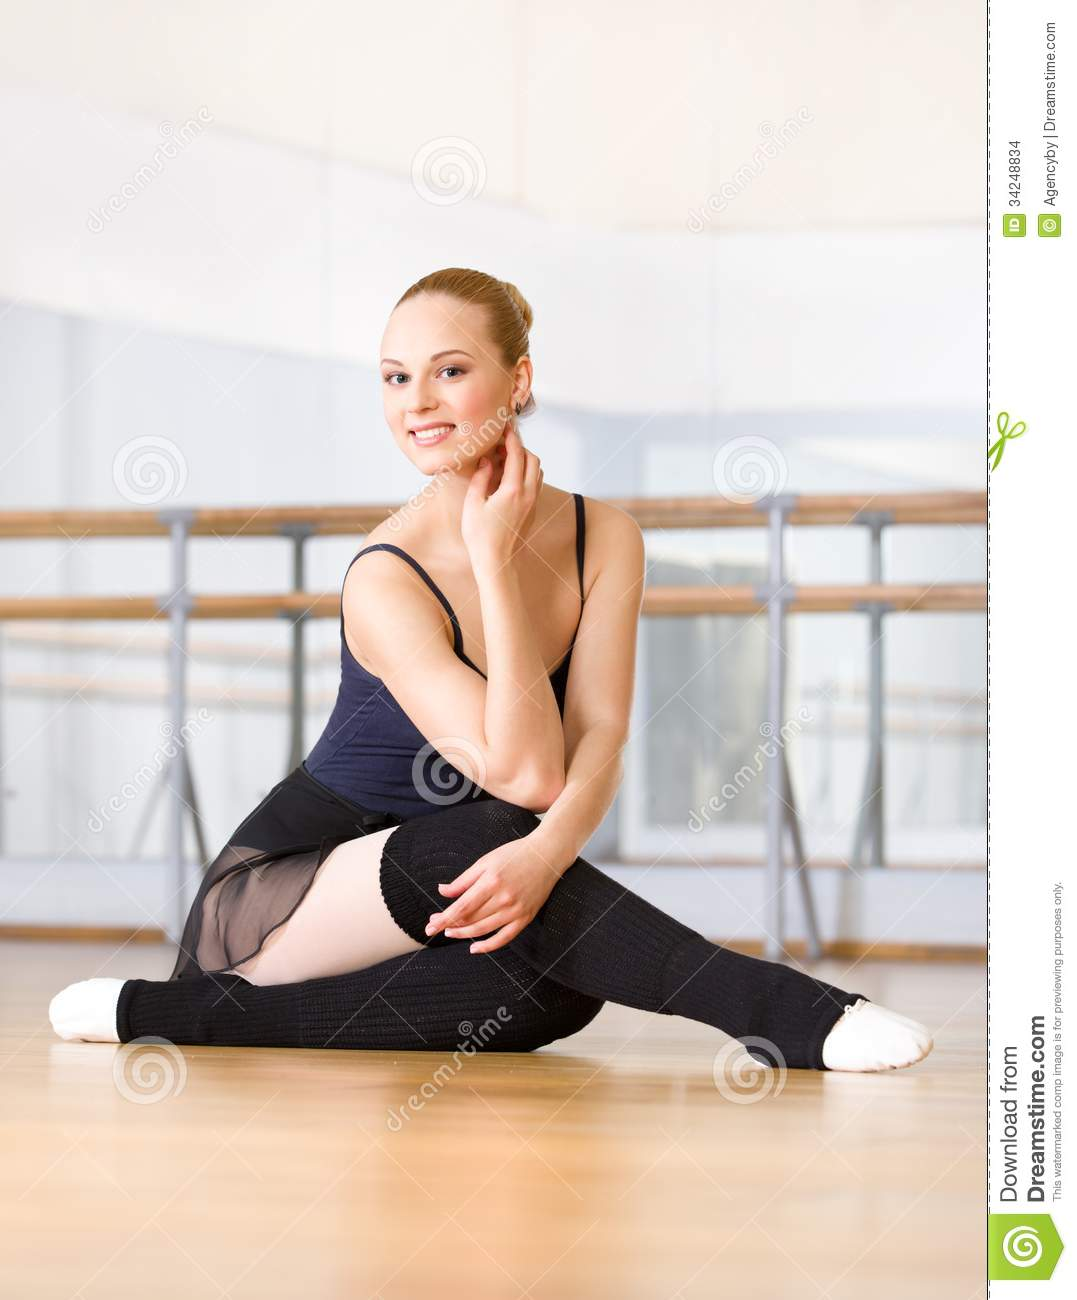 Ballet dancer works out sitting on the wooden floor stock for Dance where you sit on the floor